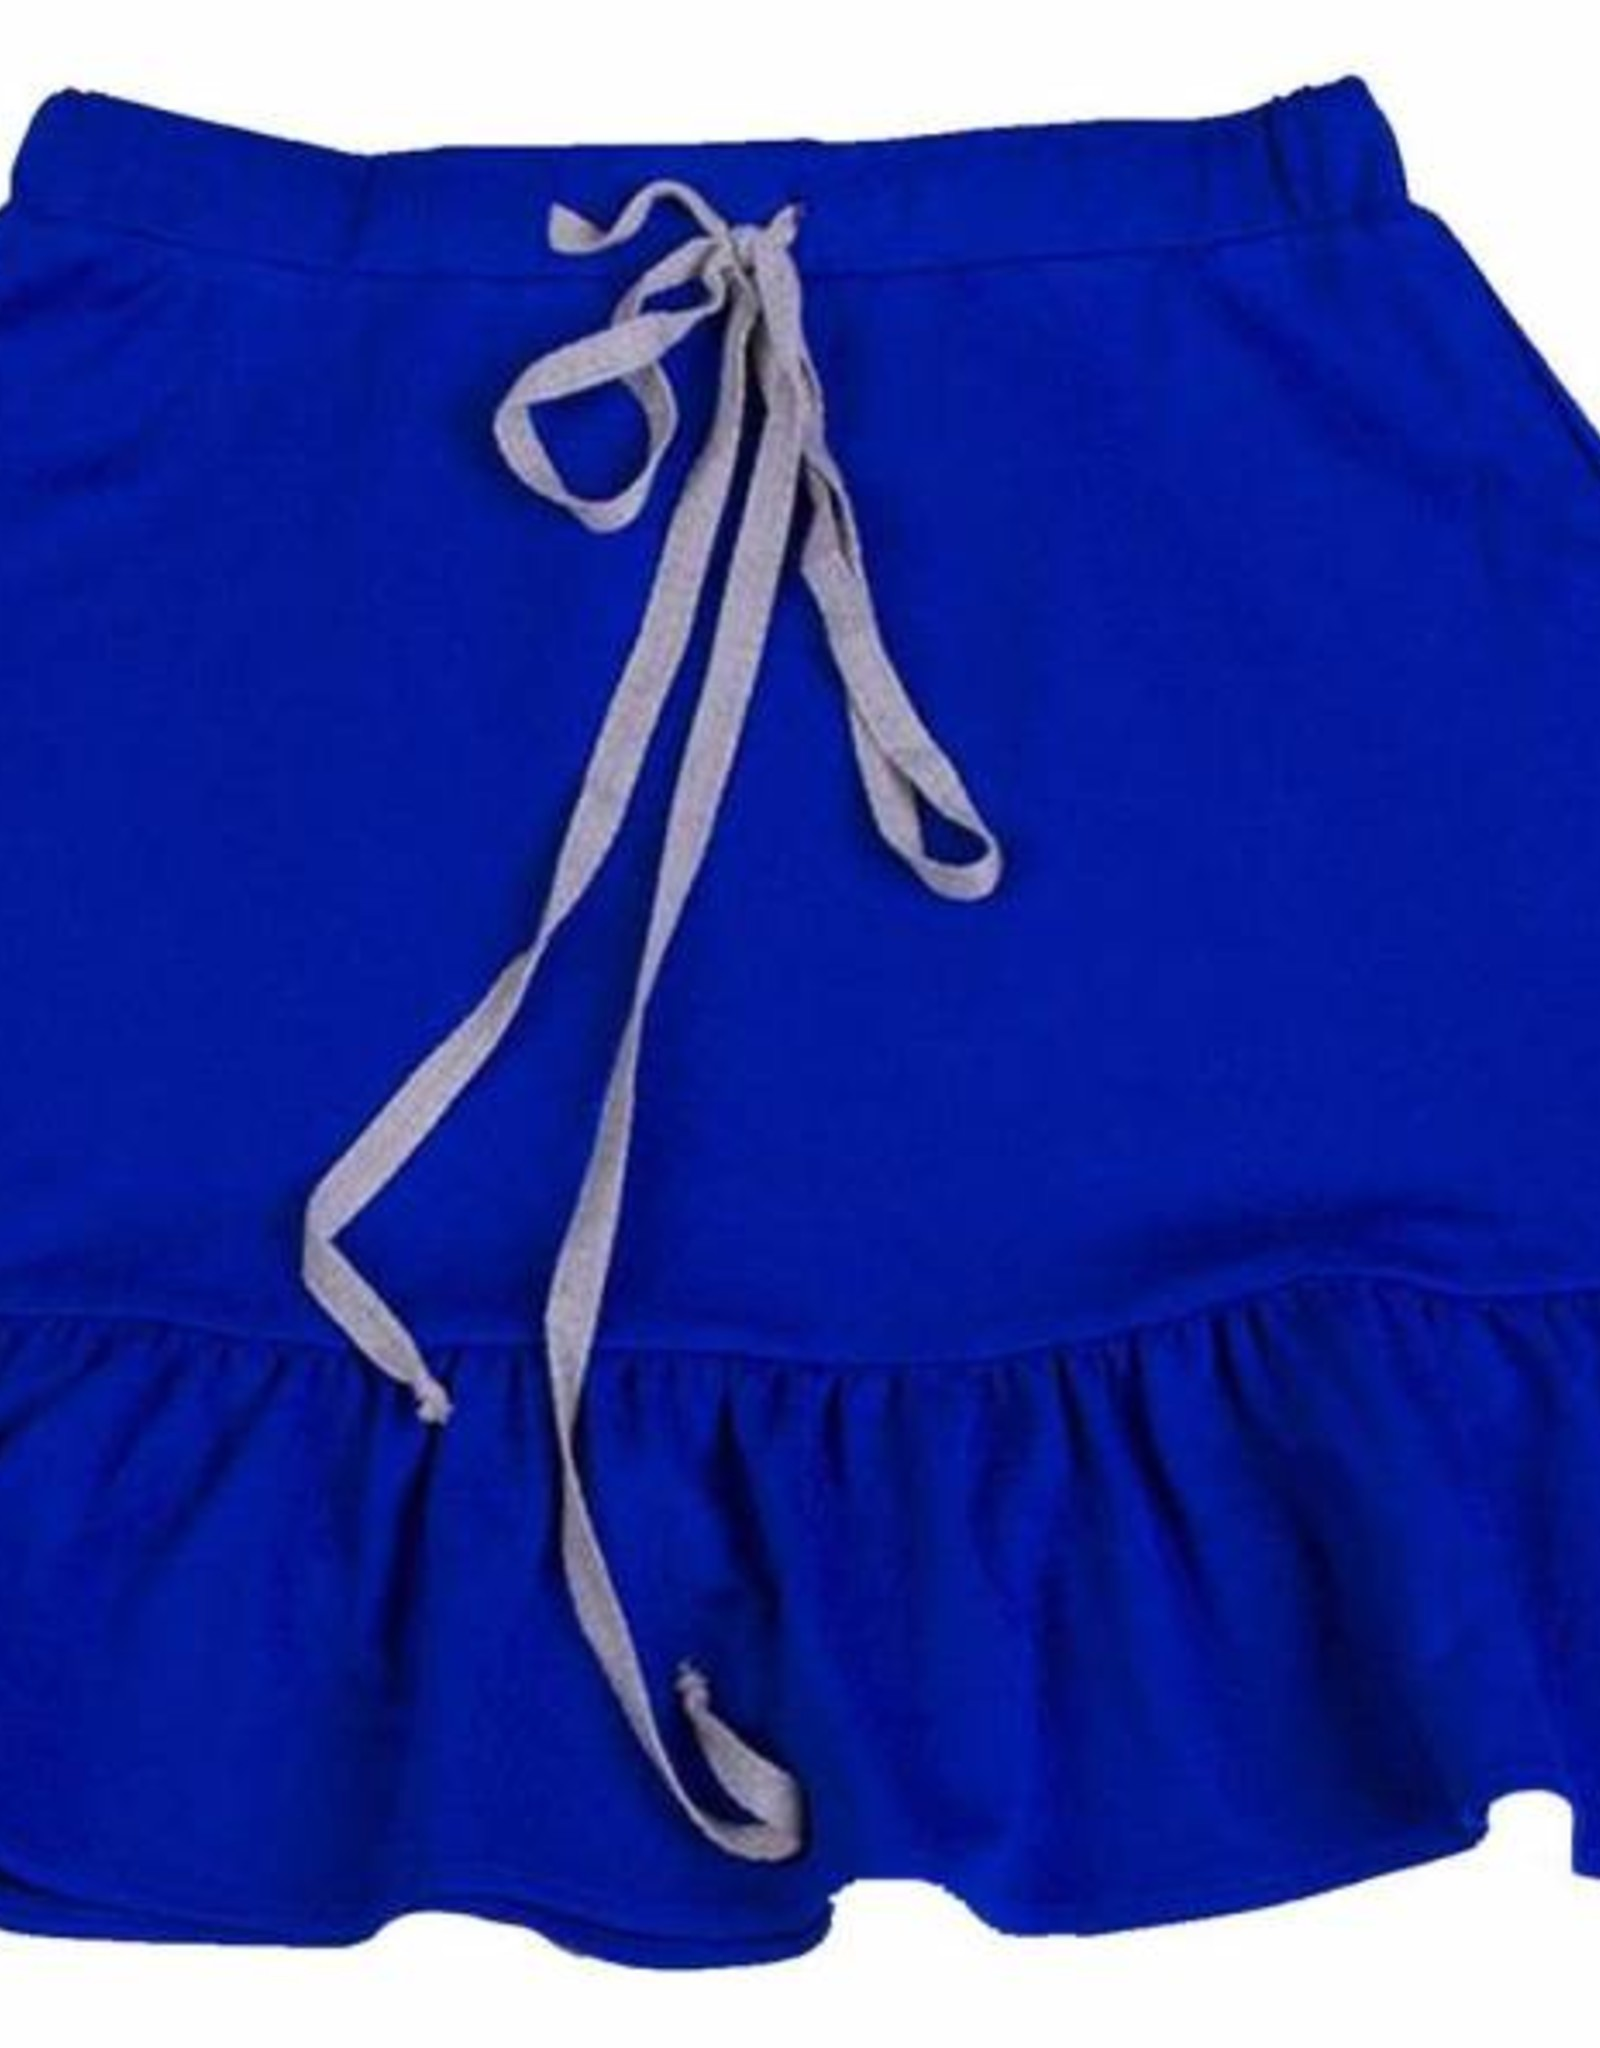 Miss Meme Royal Blue Drawstring Skirt With Ruffled Bottom Toetally You